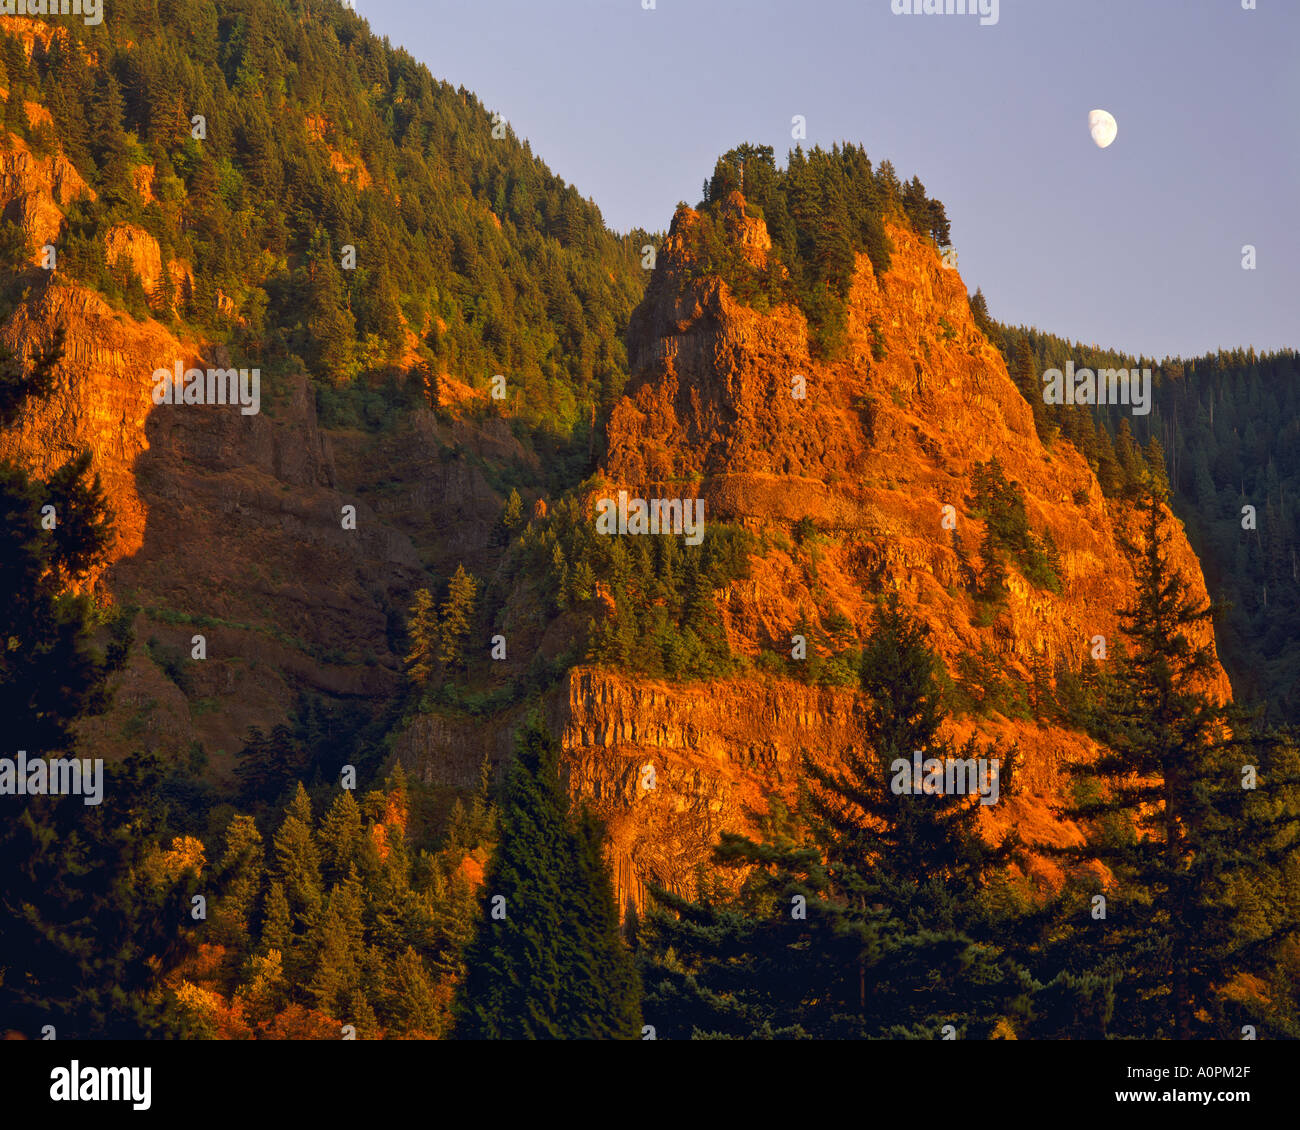 Moonrise over the Gorge Columbia River Gorge National Scenic Area Mount Hood National Forest Oregon - Stock Image